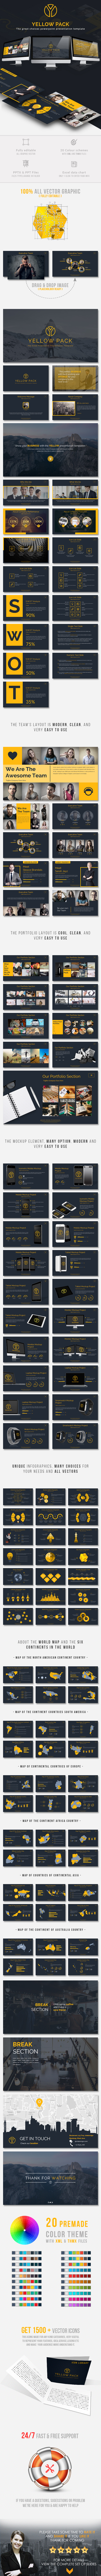 Yellow Pack Powerpoint Presentation Template - Business PowerPoint Templates